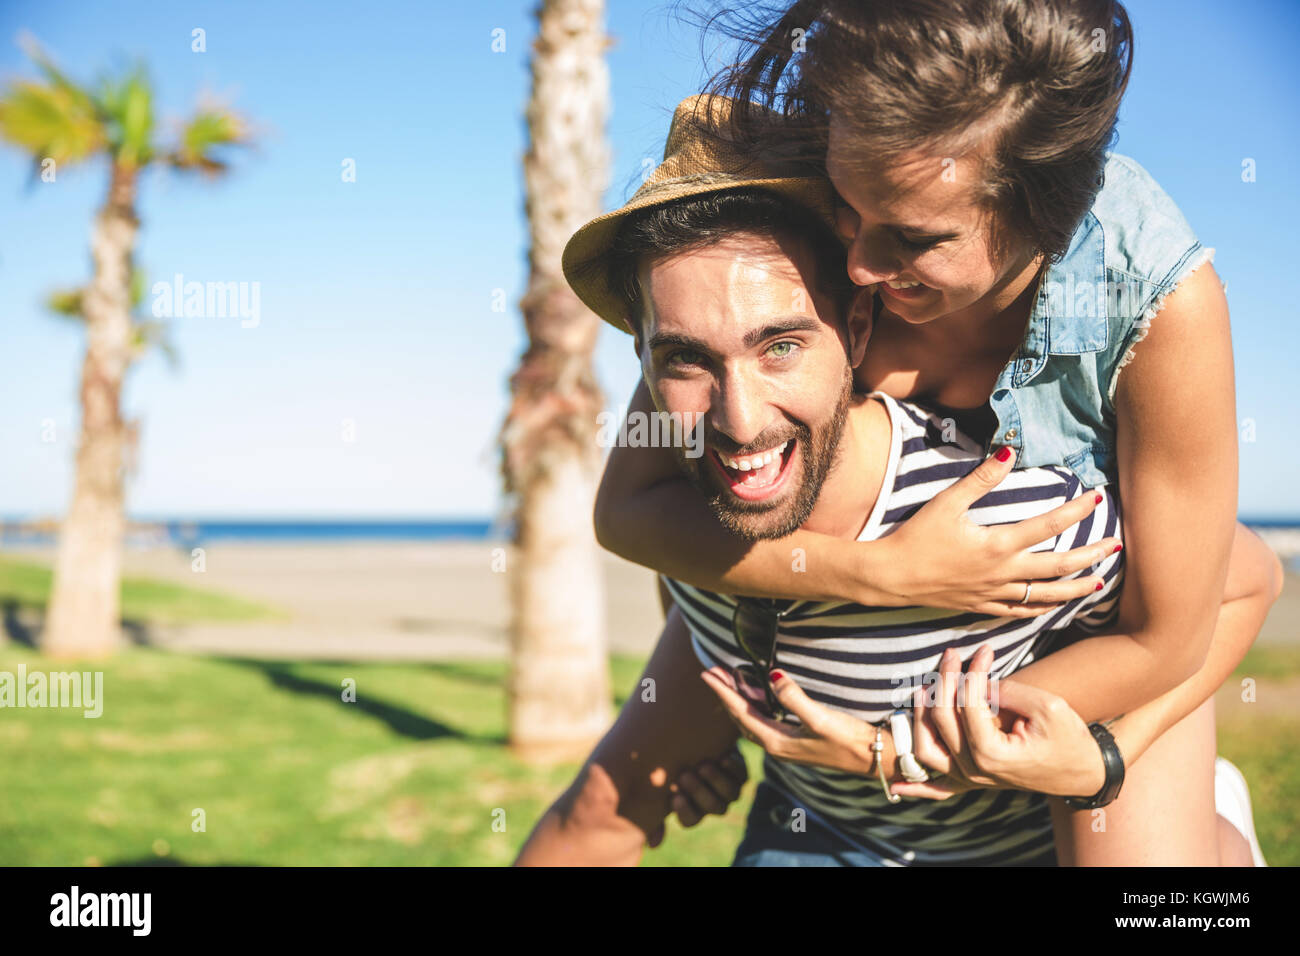 Portrait of happy man giving his girlfriend piggyback ride - Stock Image